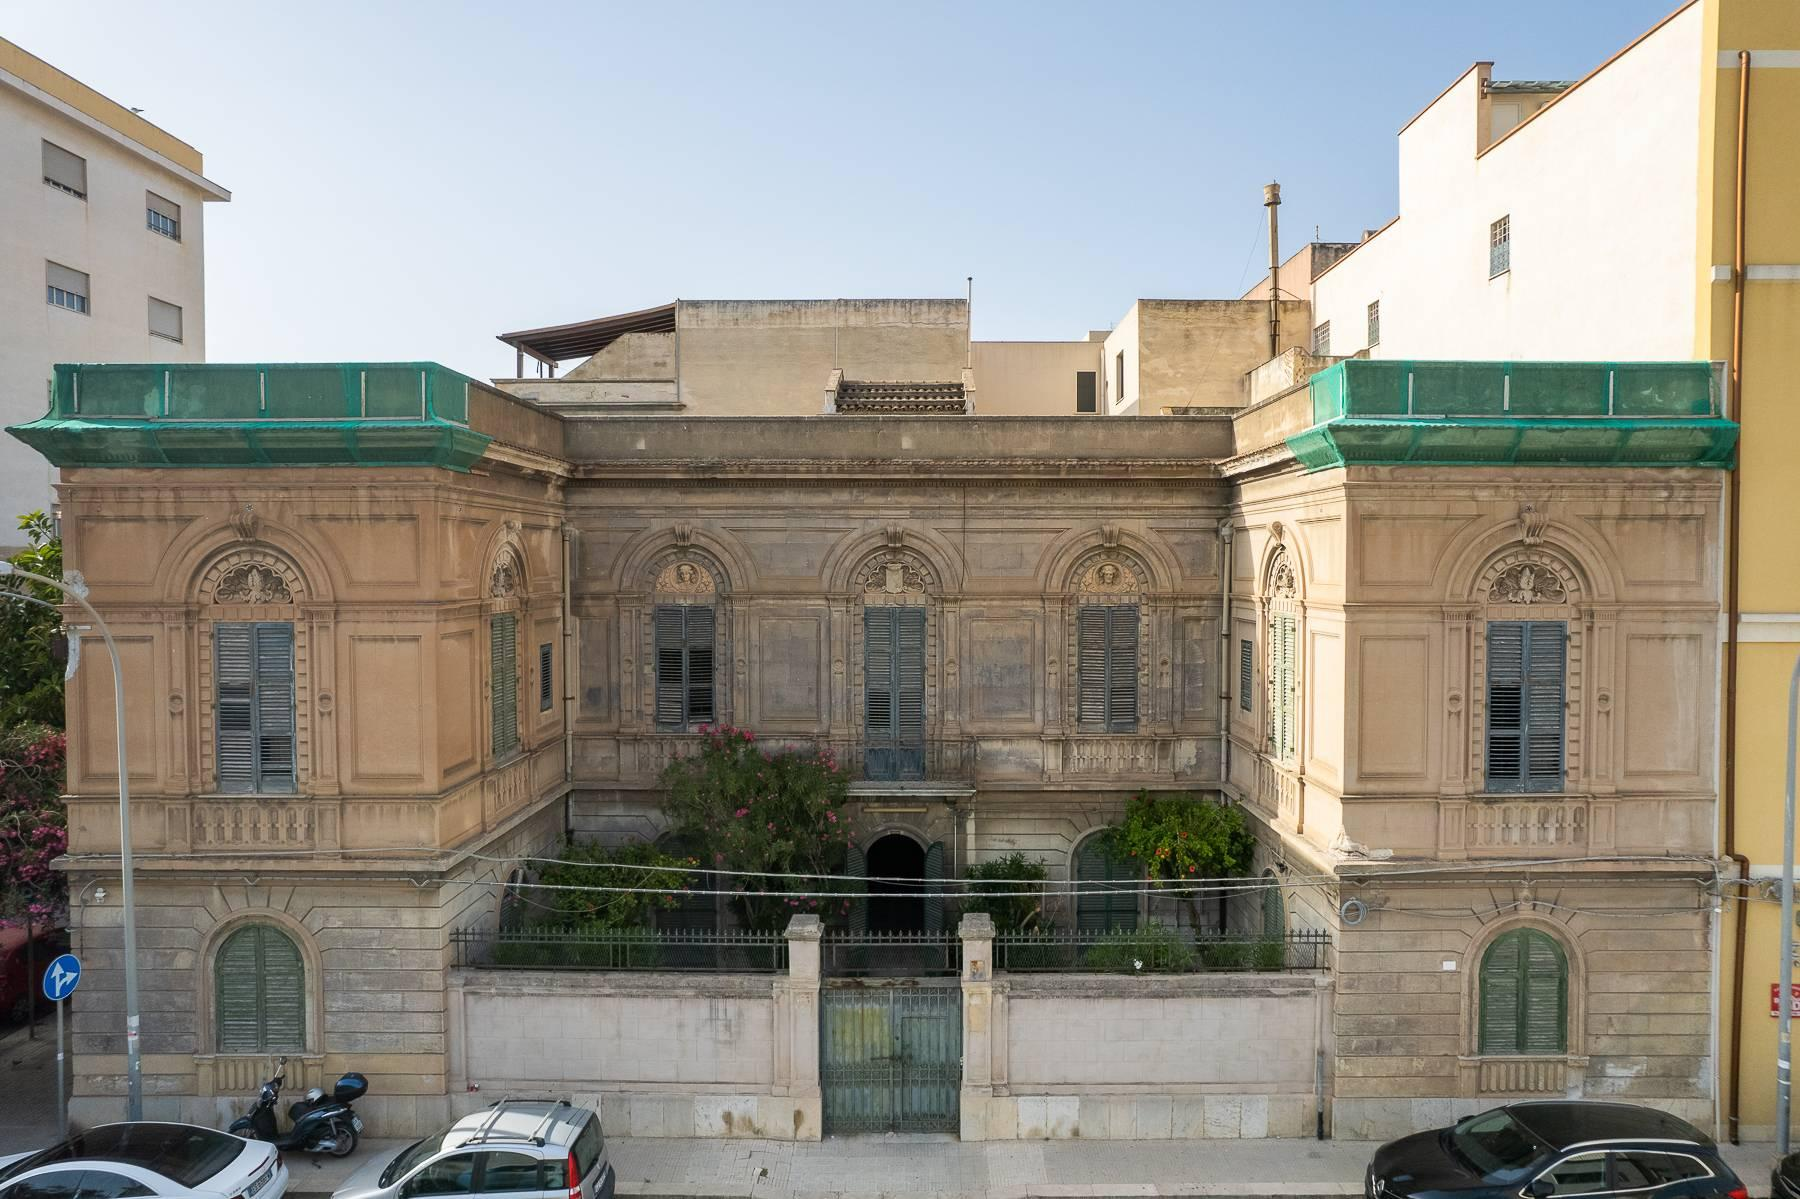 Liberty style building in the historical center of Trapani - 2